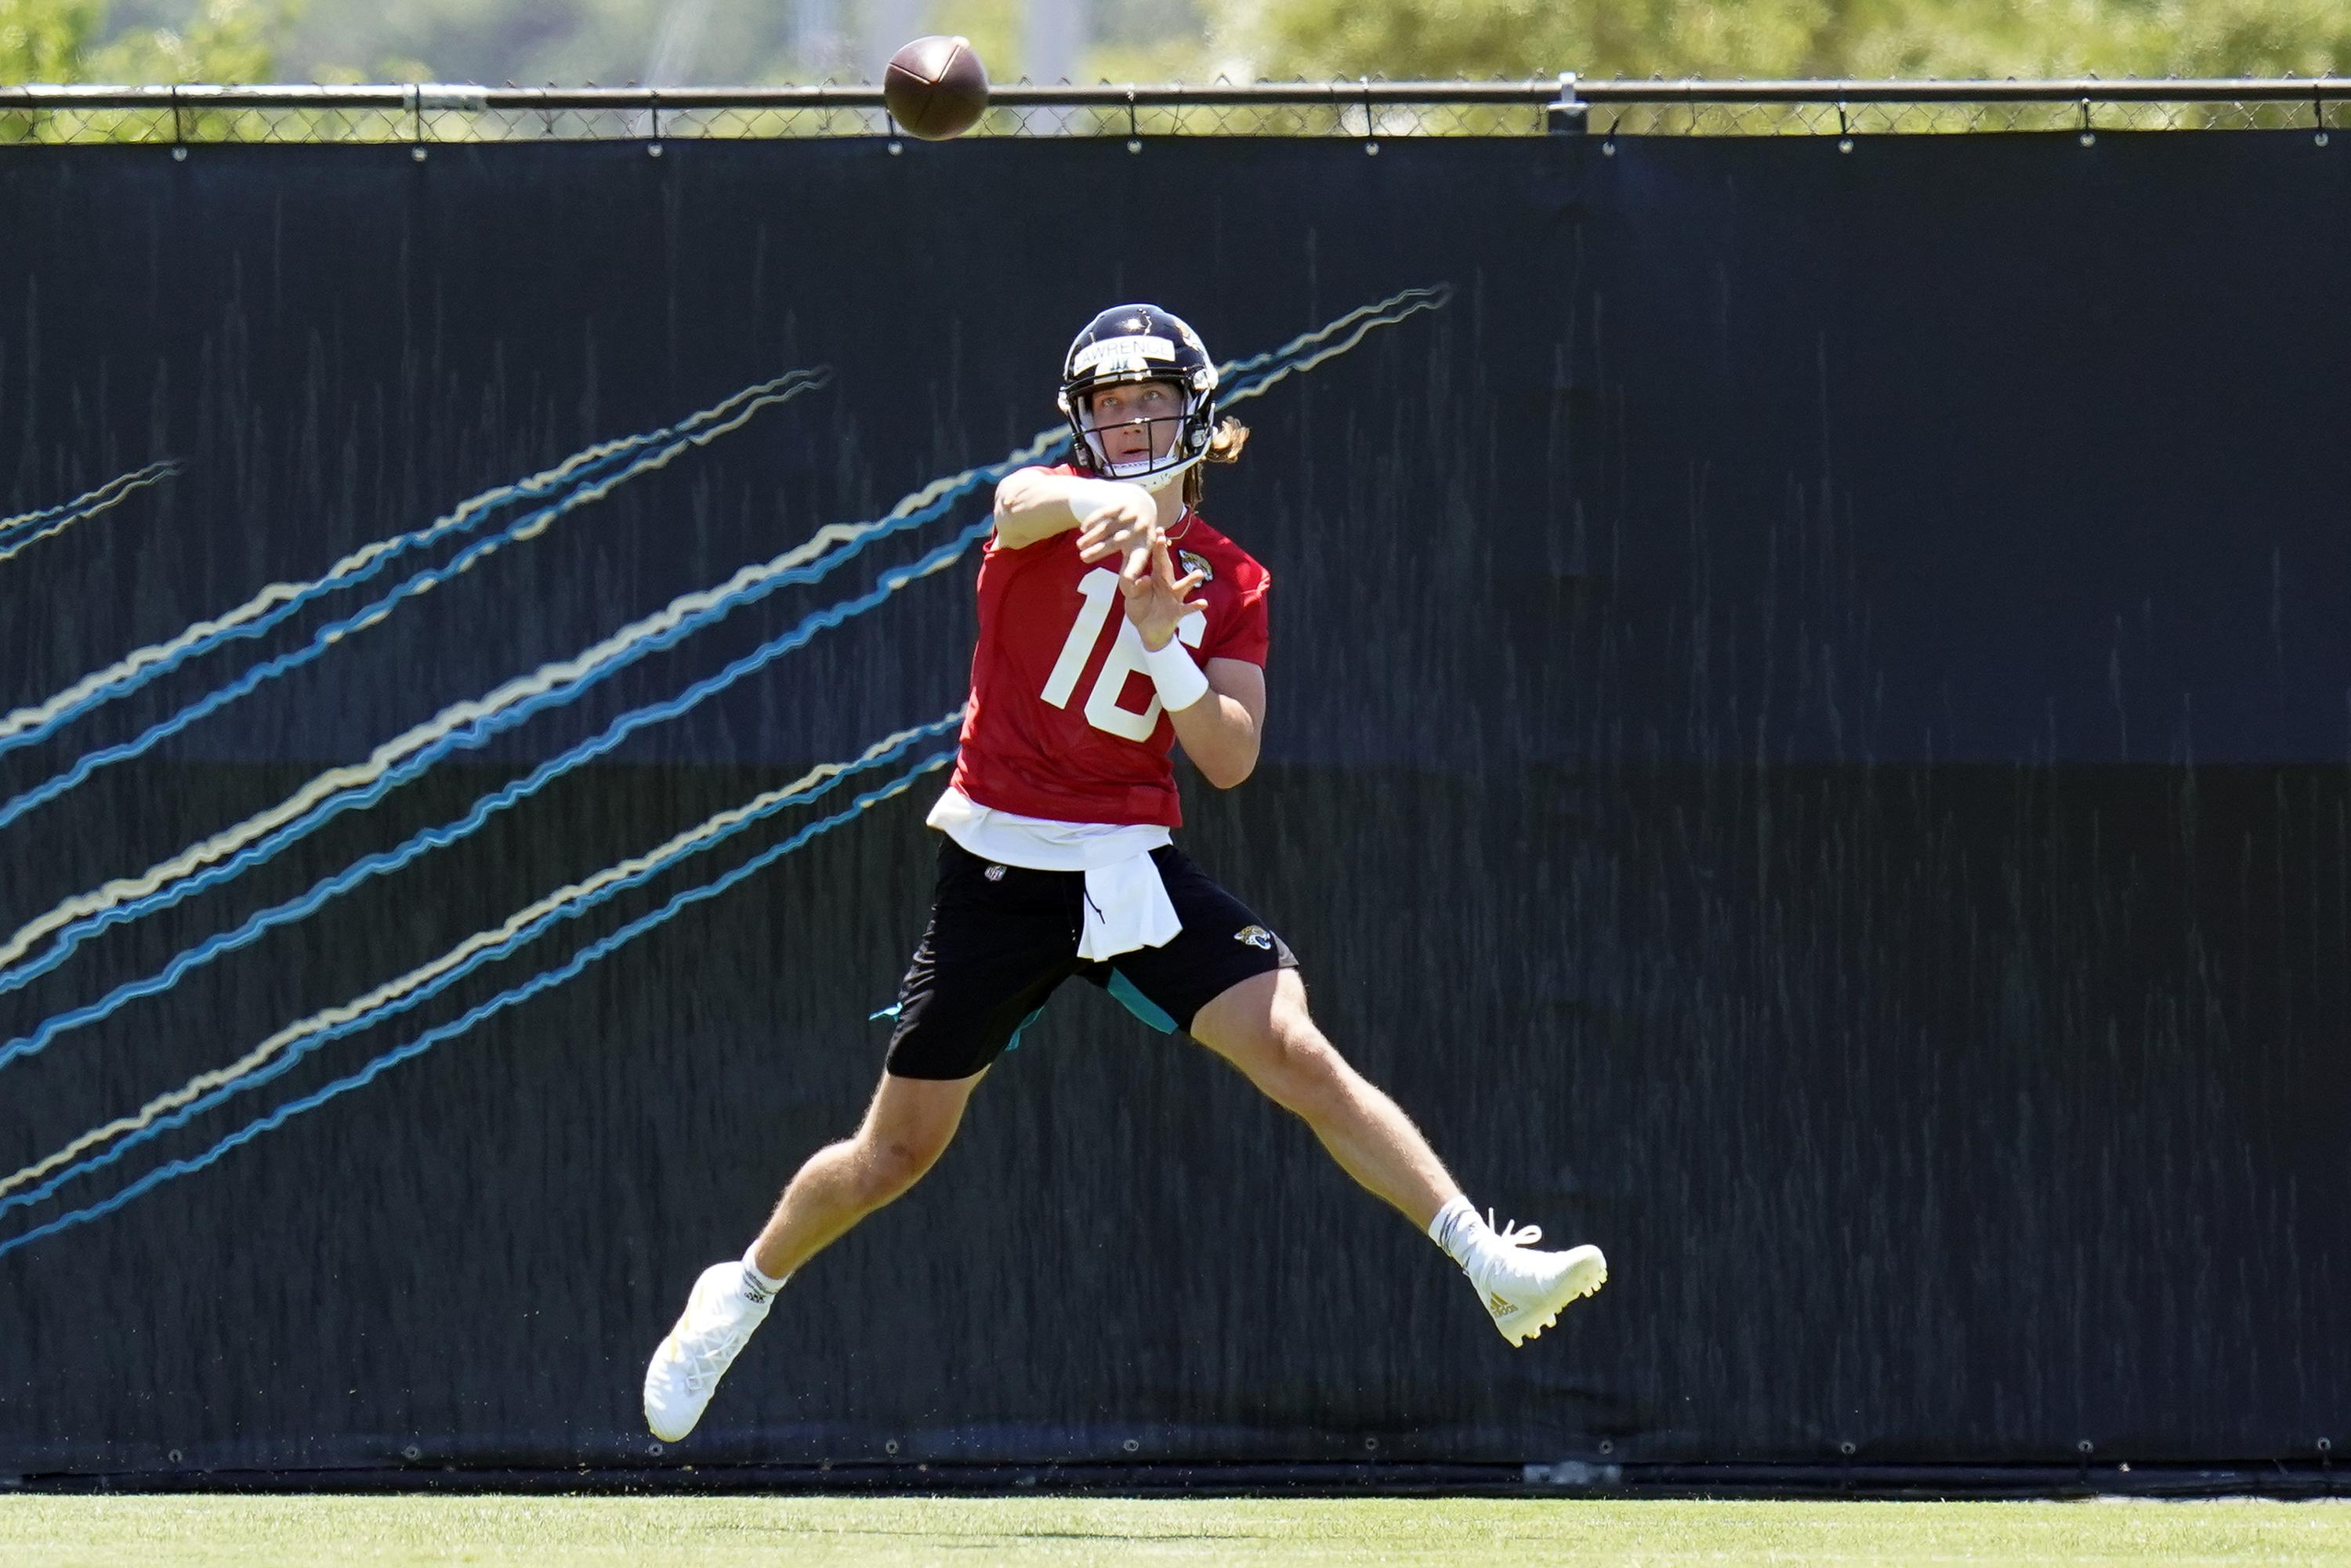 1st rule of Jaguars rookie camp: Don't touch QB Lawrence